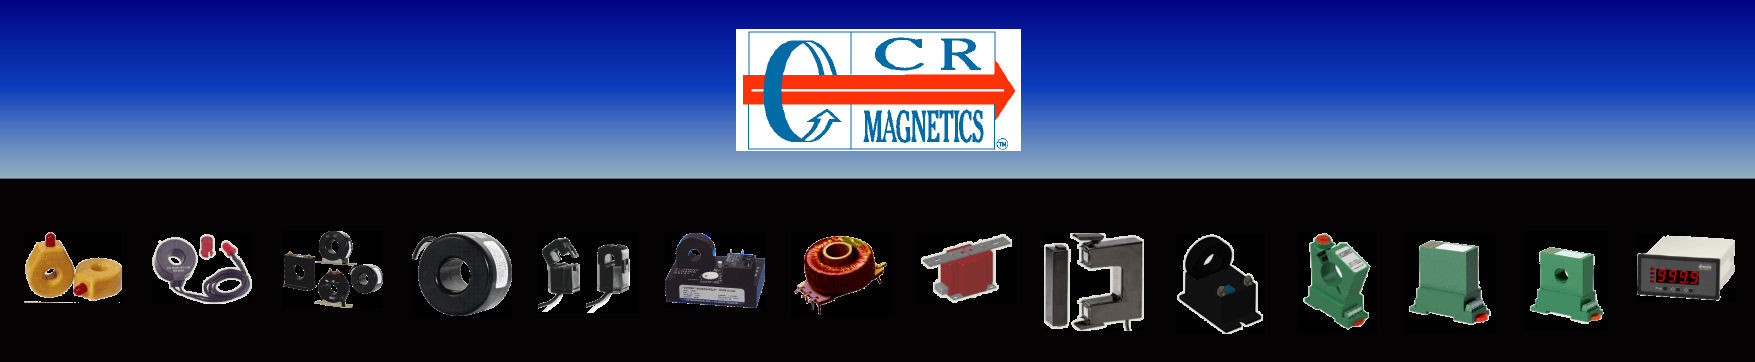 CR Magnetics CT's